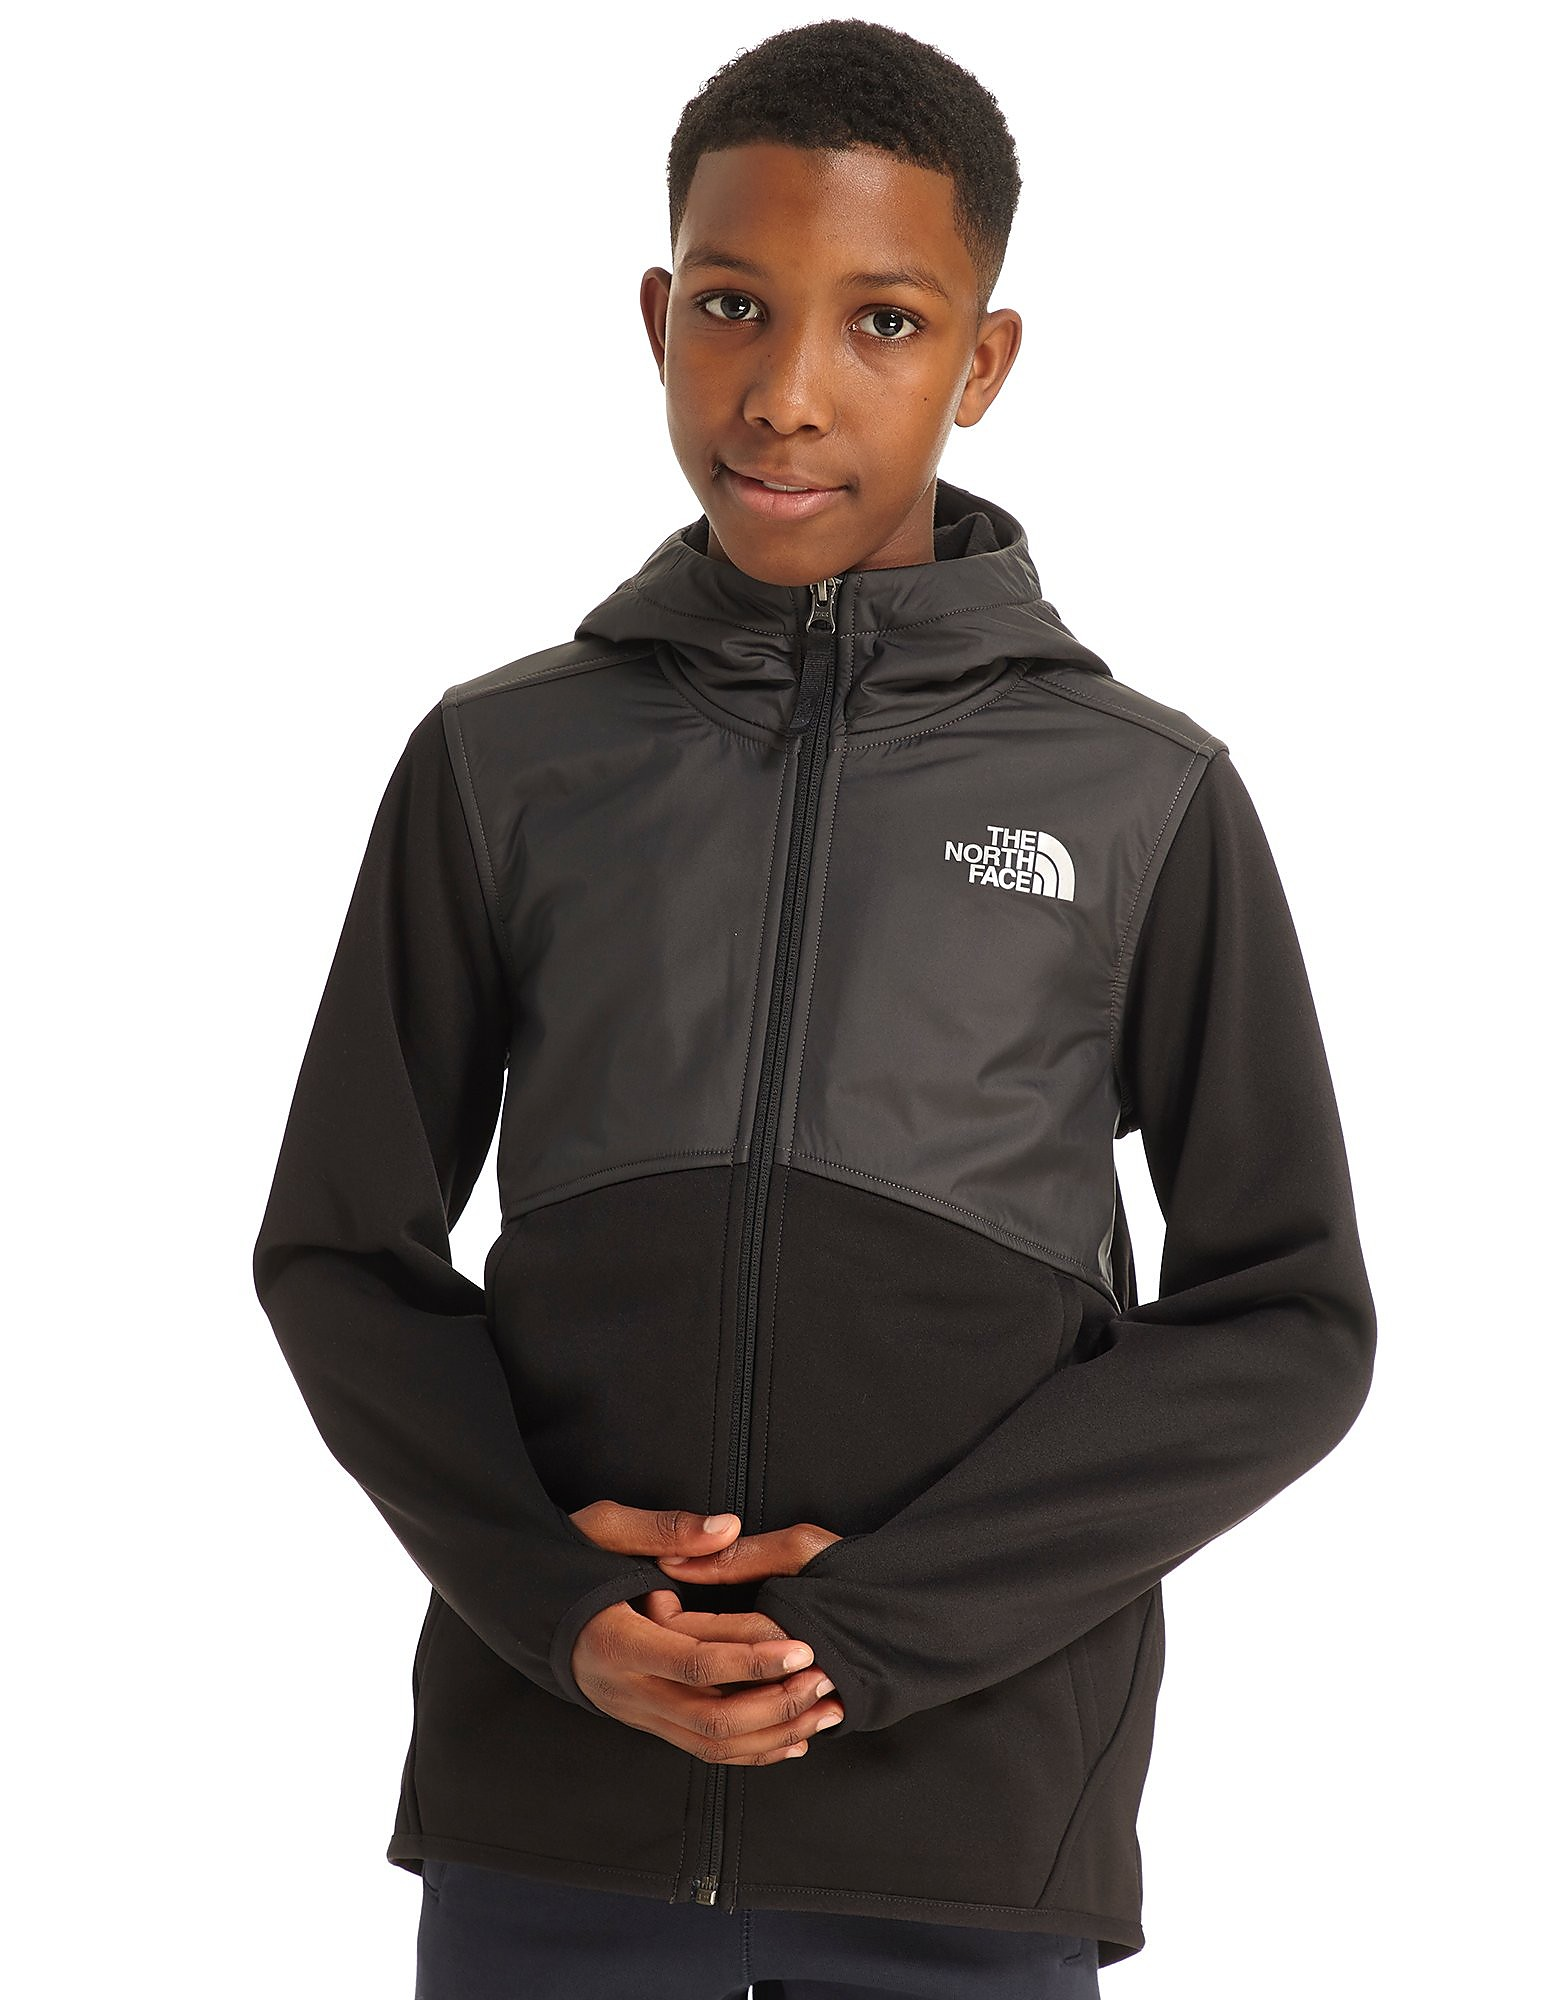 The North Face Kickin' It Hoody